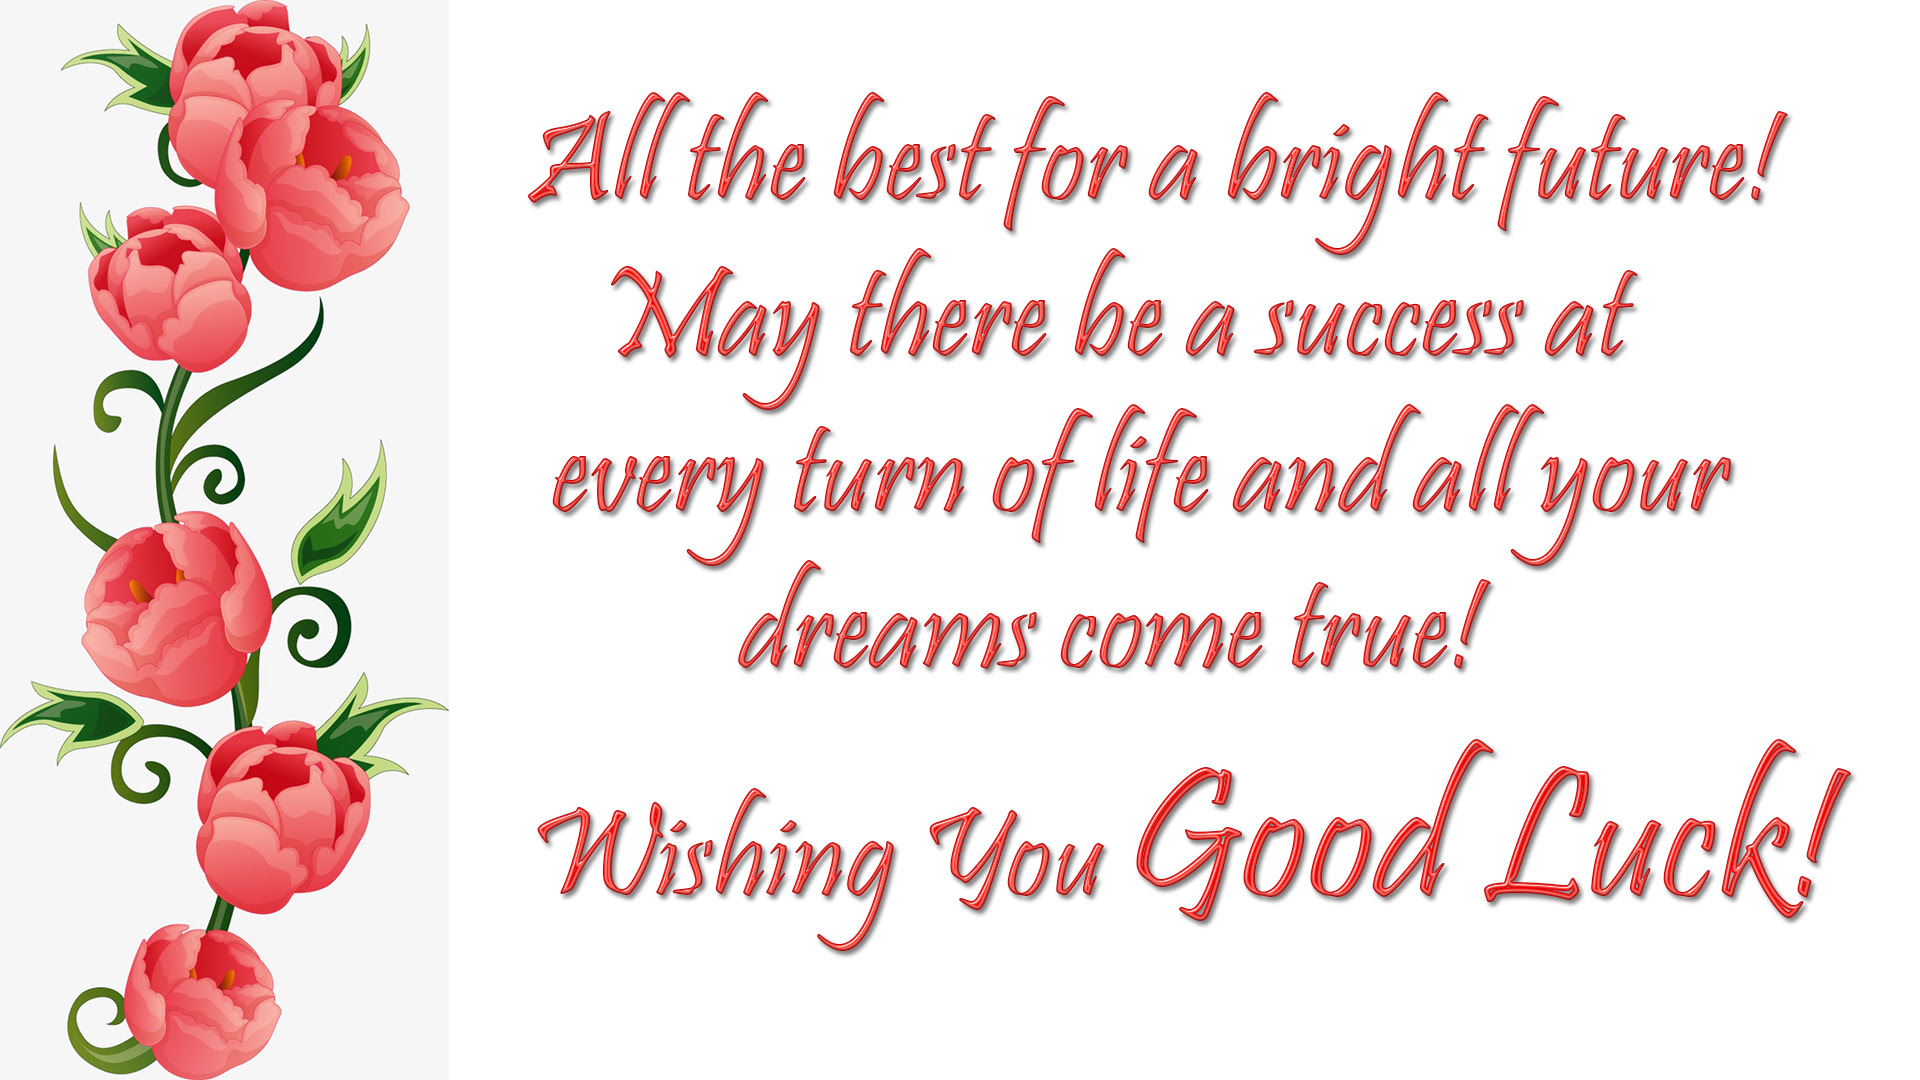 Good Luck Wishes Quotes Messages Images All The Best Wishes